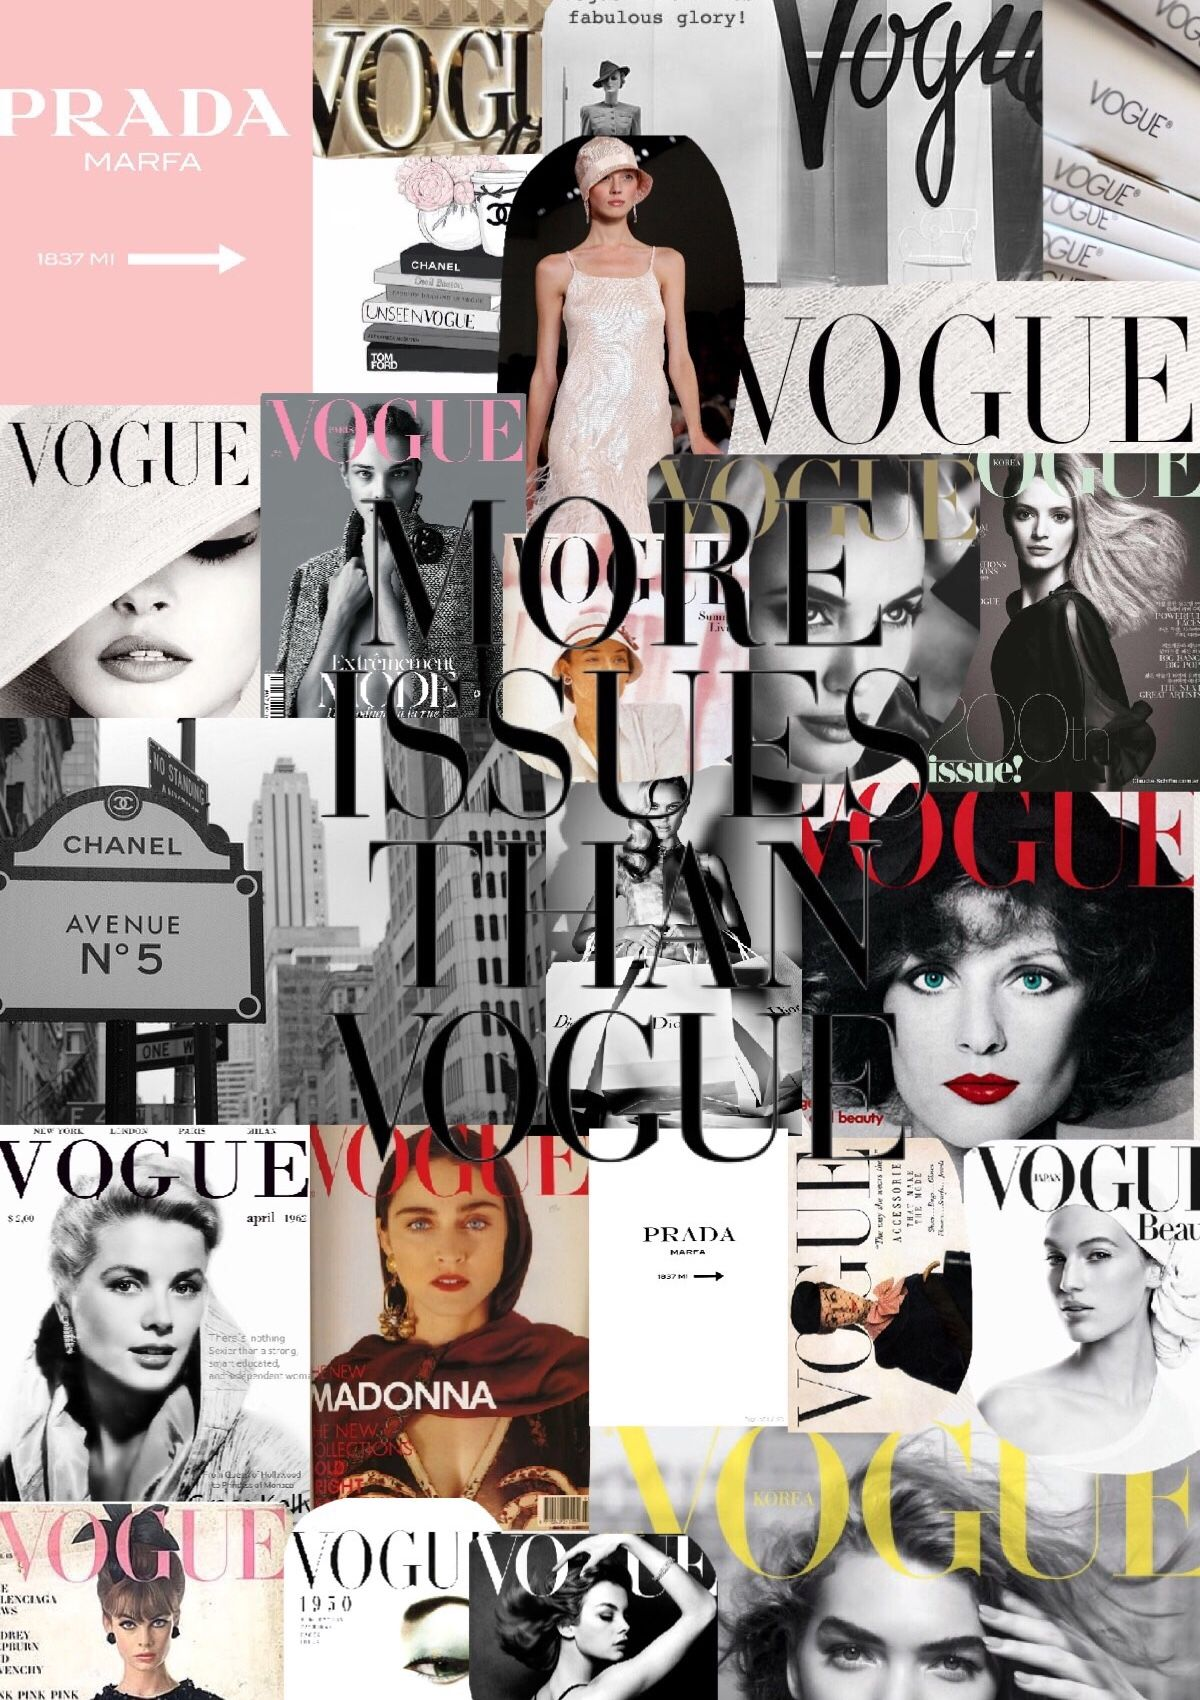 Pin By Catherine Fiebig On Gambar Fashion Collage Fashion Wallpaper Aesthetic Collage